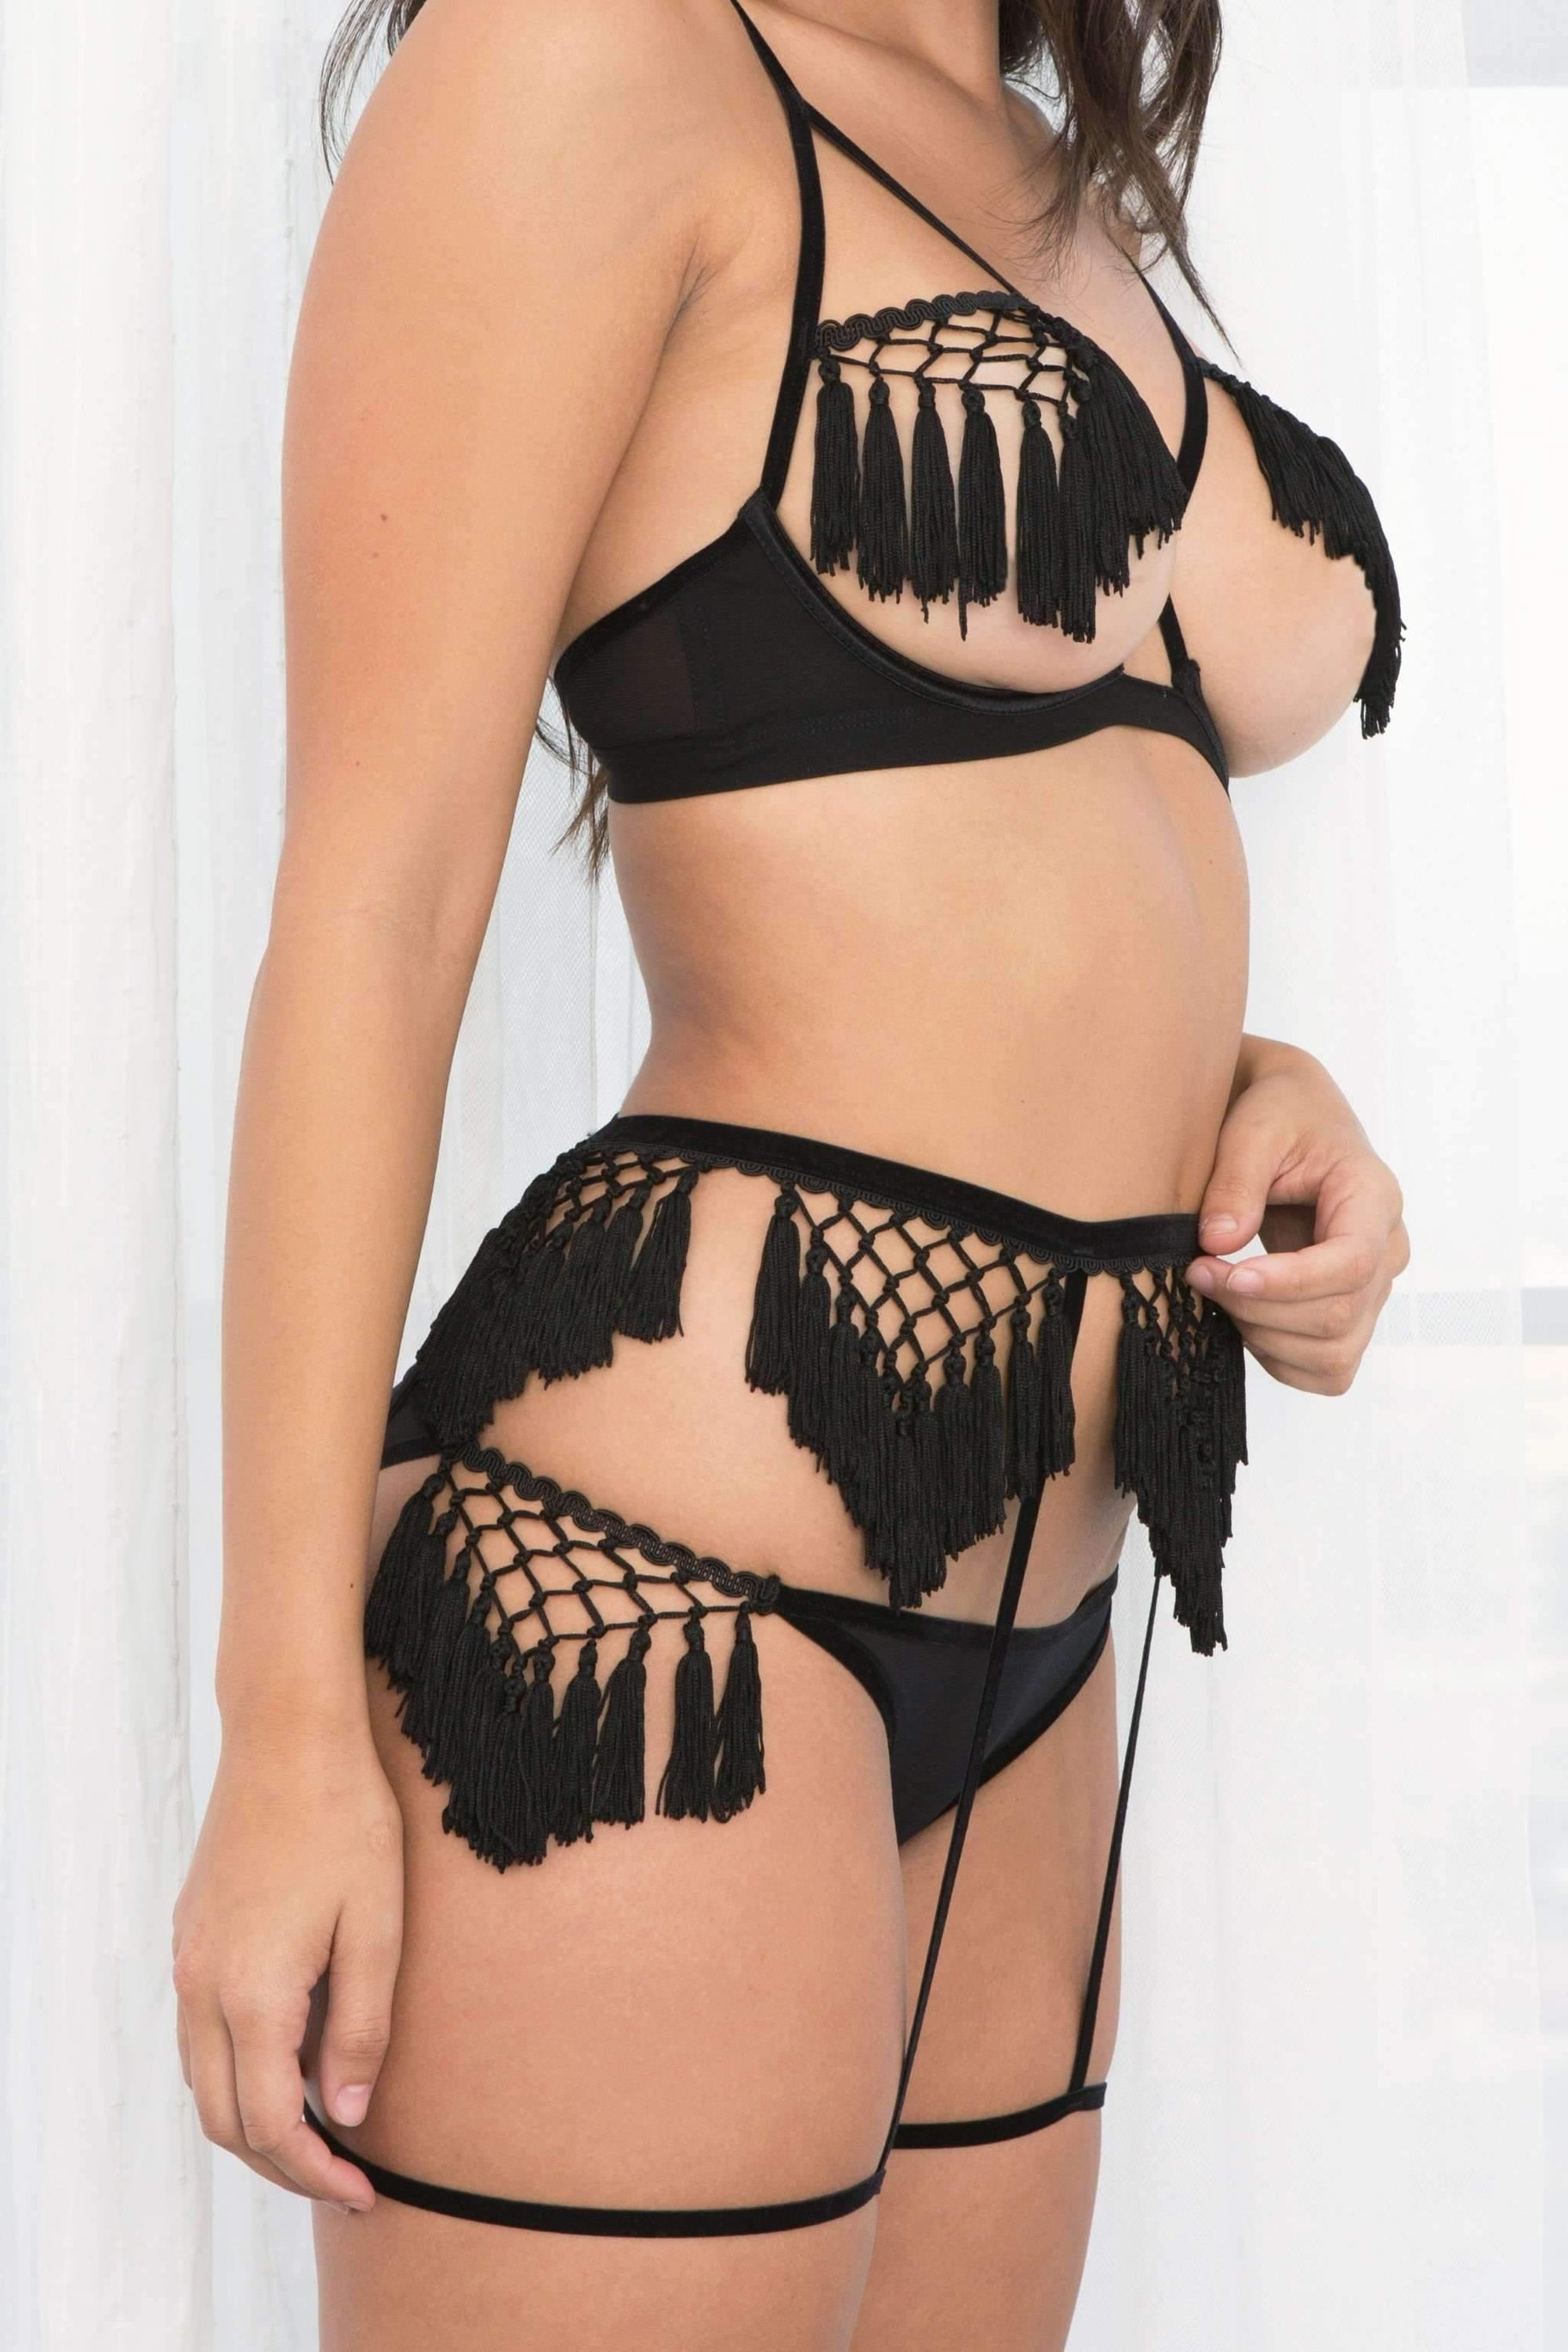 Aster Fringe & Mesh Bralette-Bralettes-Honeydew Intimates-Black-Small-Honeydew Intimates